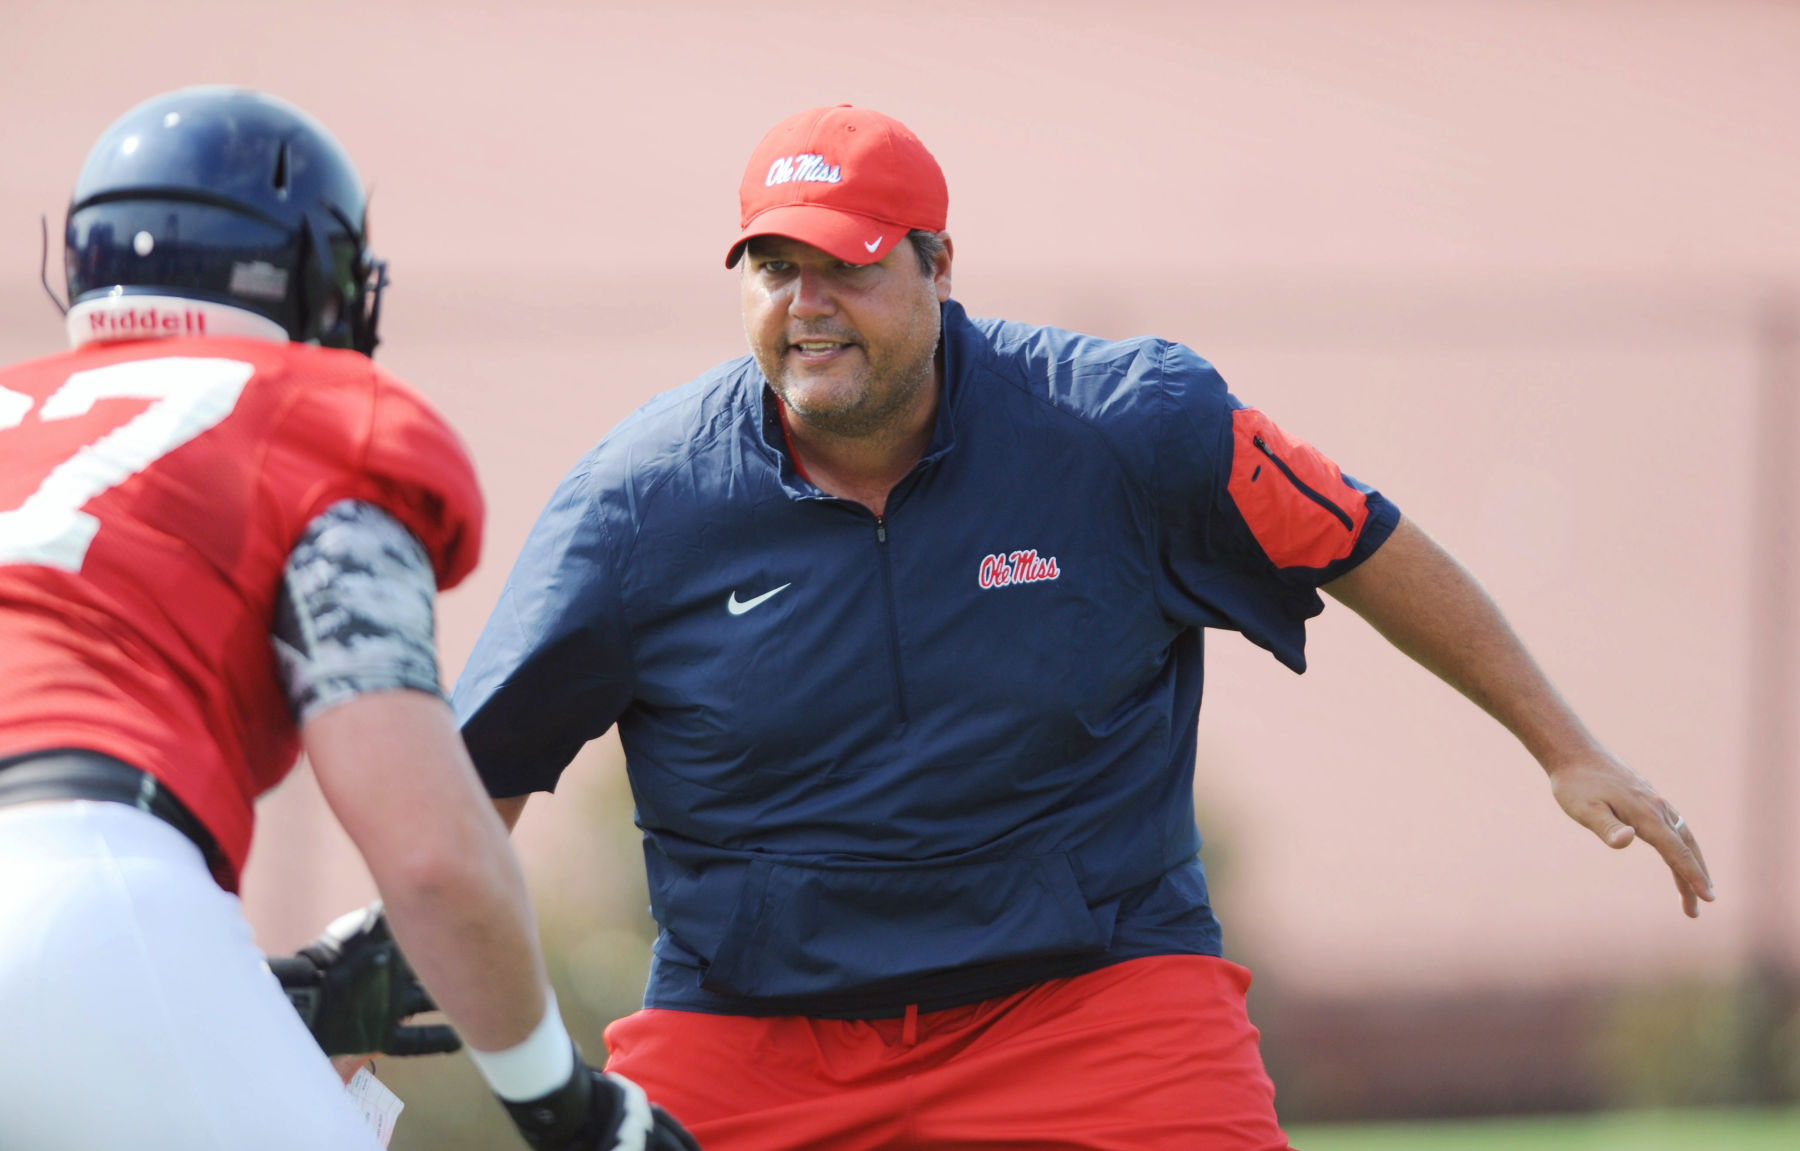 Hugh Freeze resigns as head coach of Ole Miss's football team